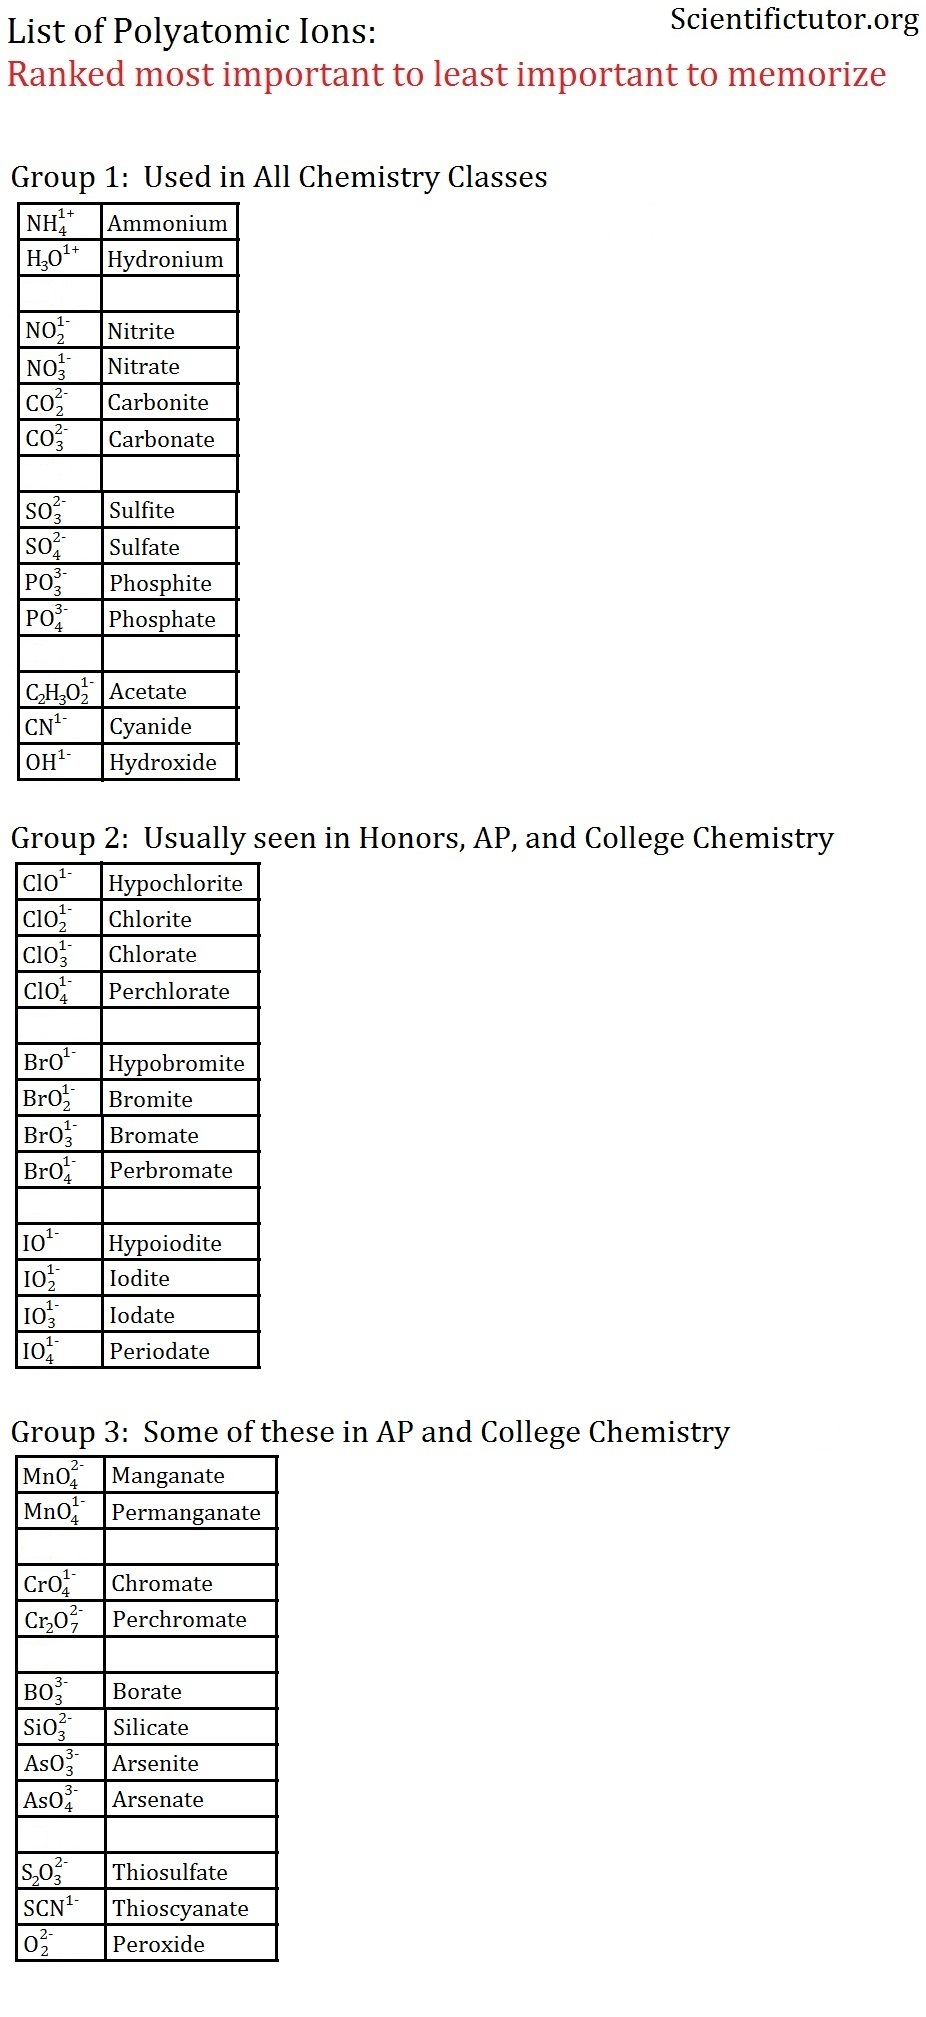 worksheet Chemical Formulas All Worksheets chem breaking apart ionic compounds scientific tutor ions list